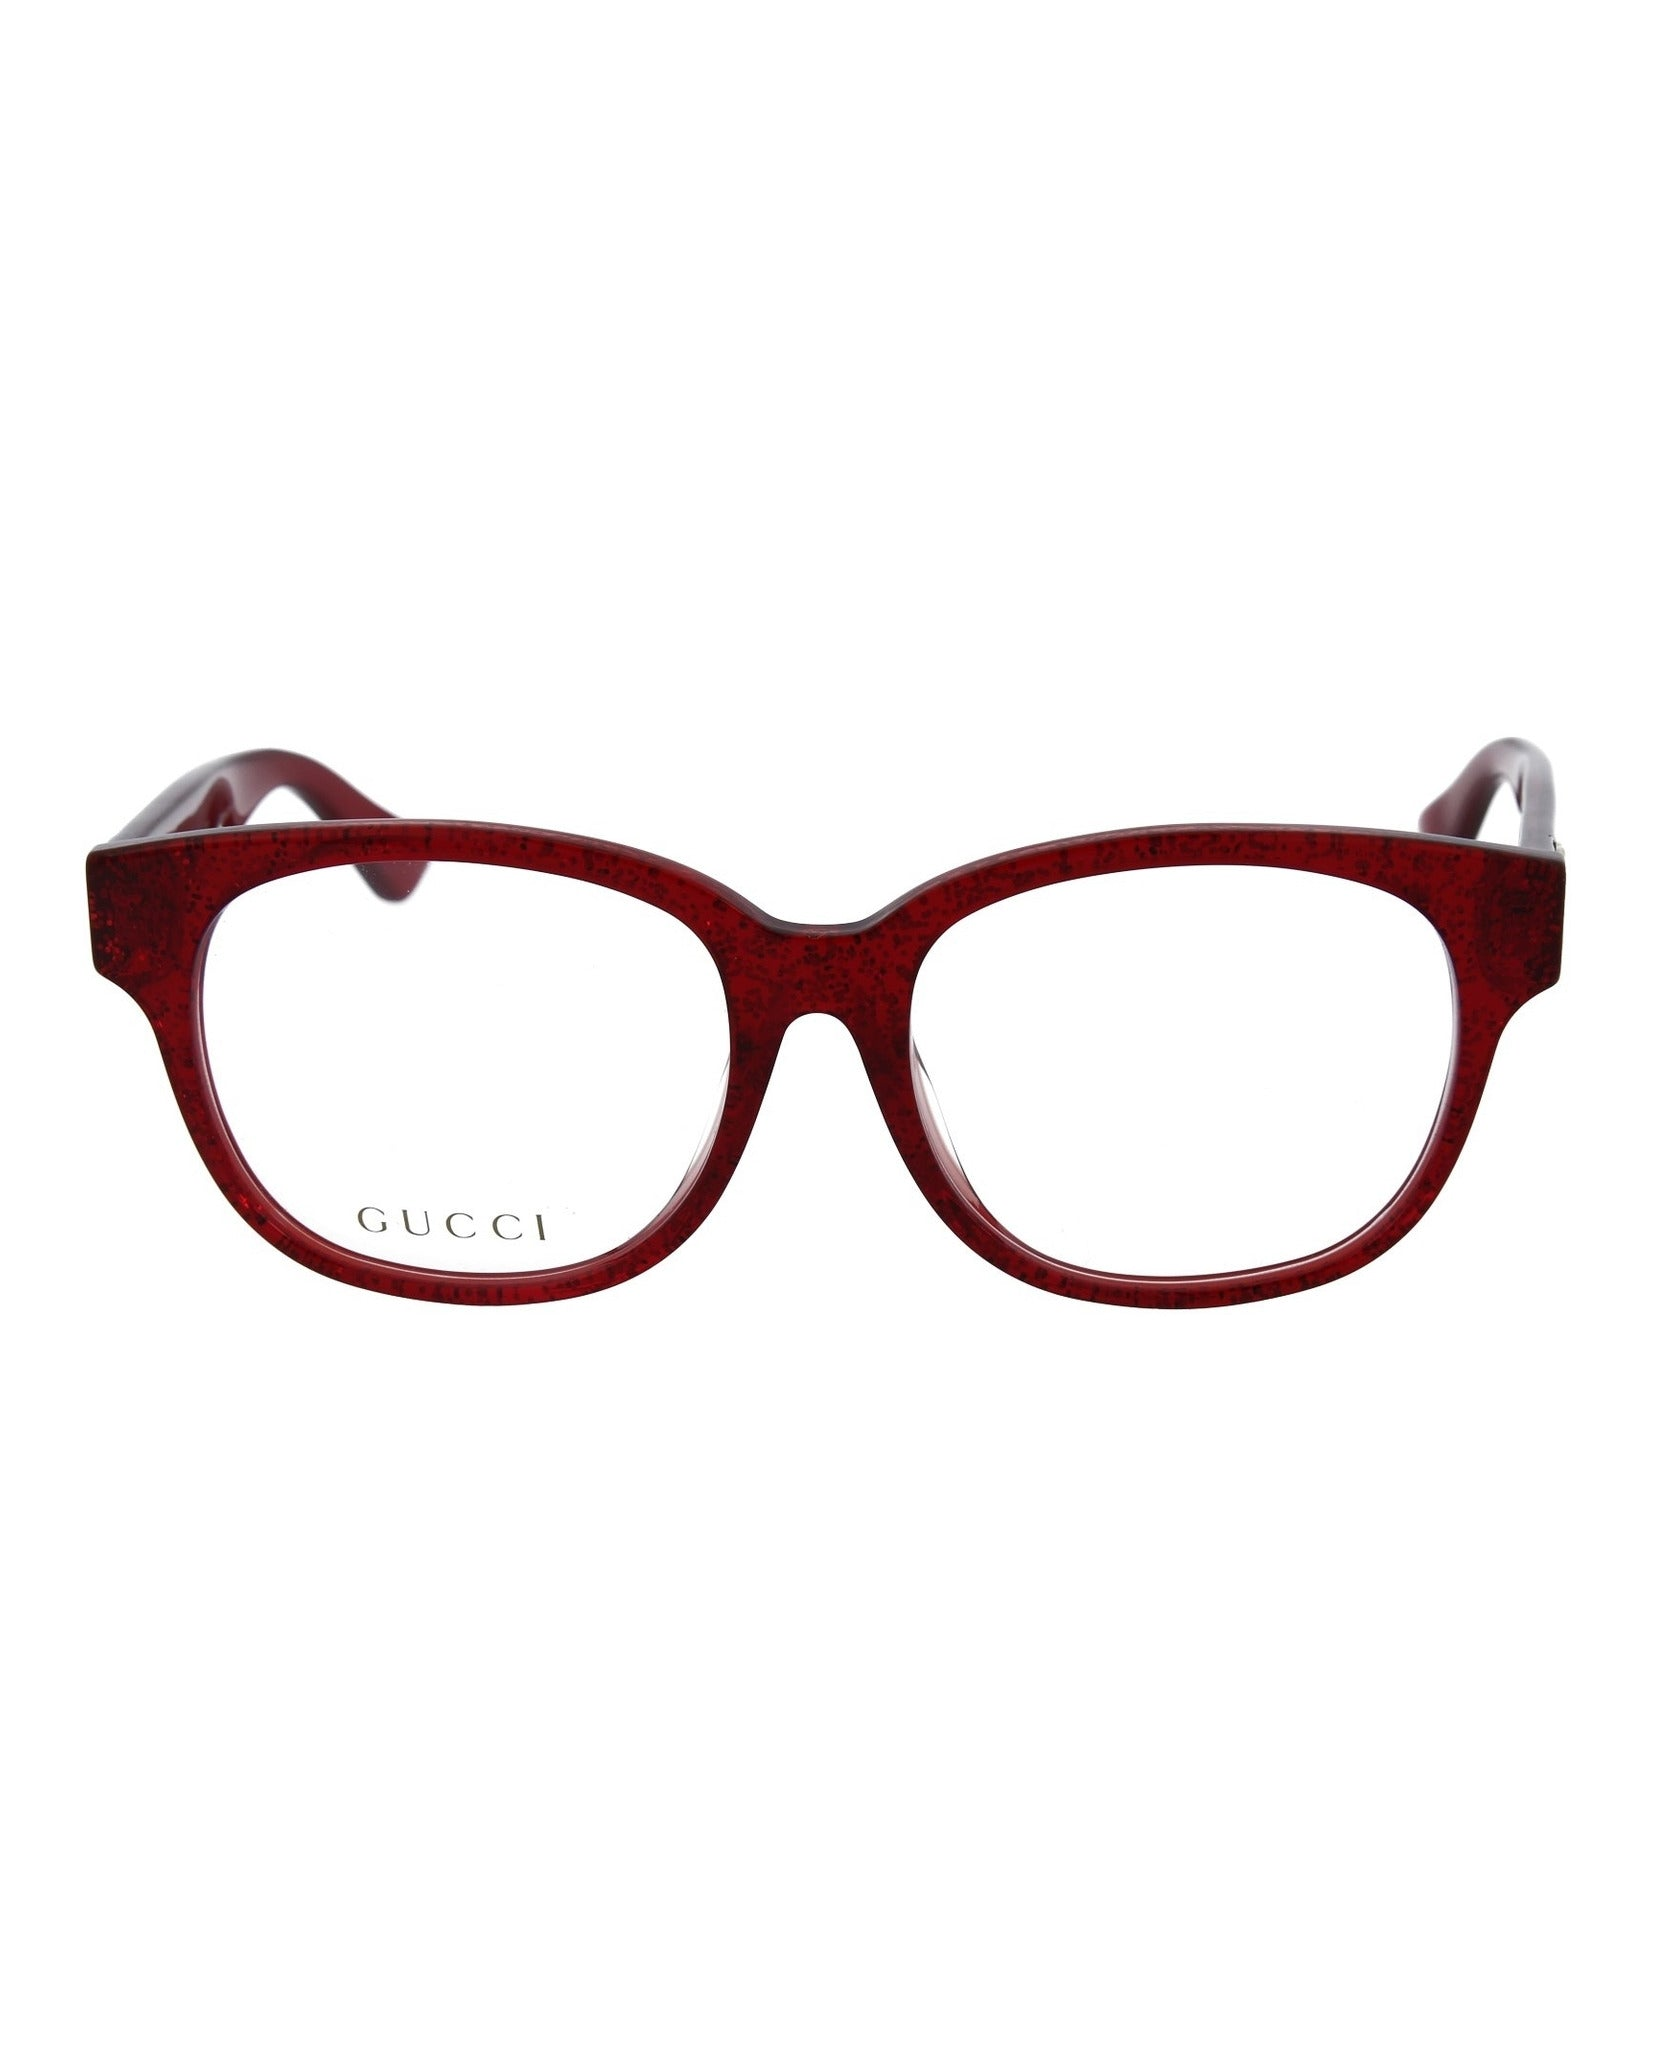 Gucci Square-Rectangle Optical Frames